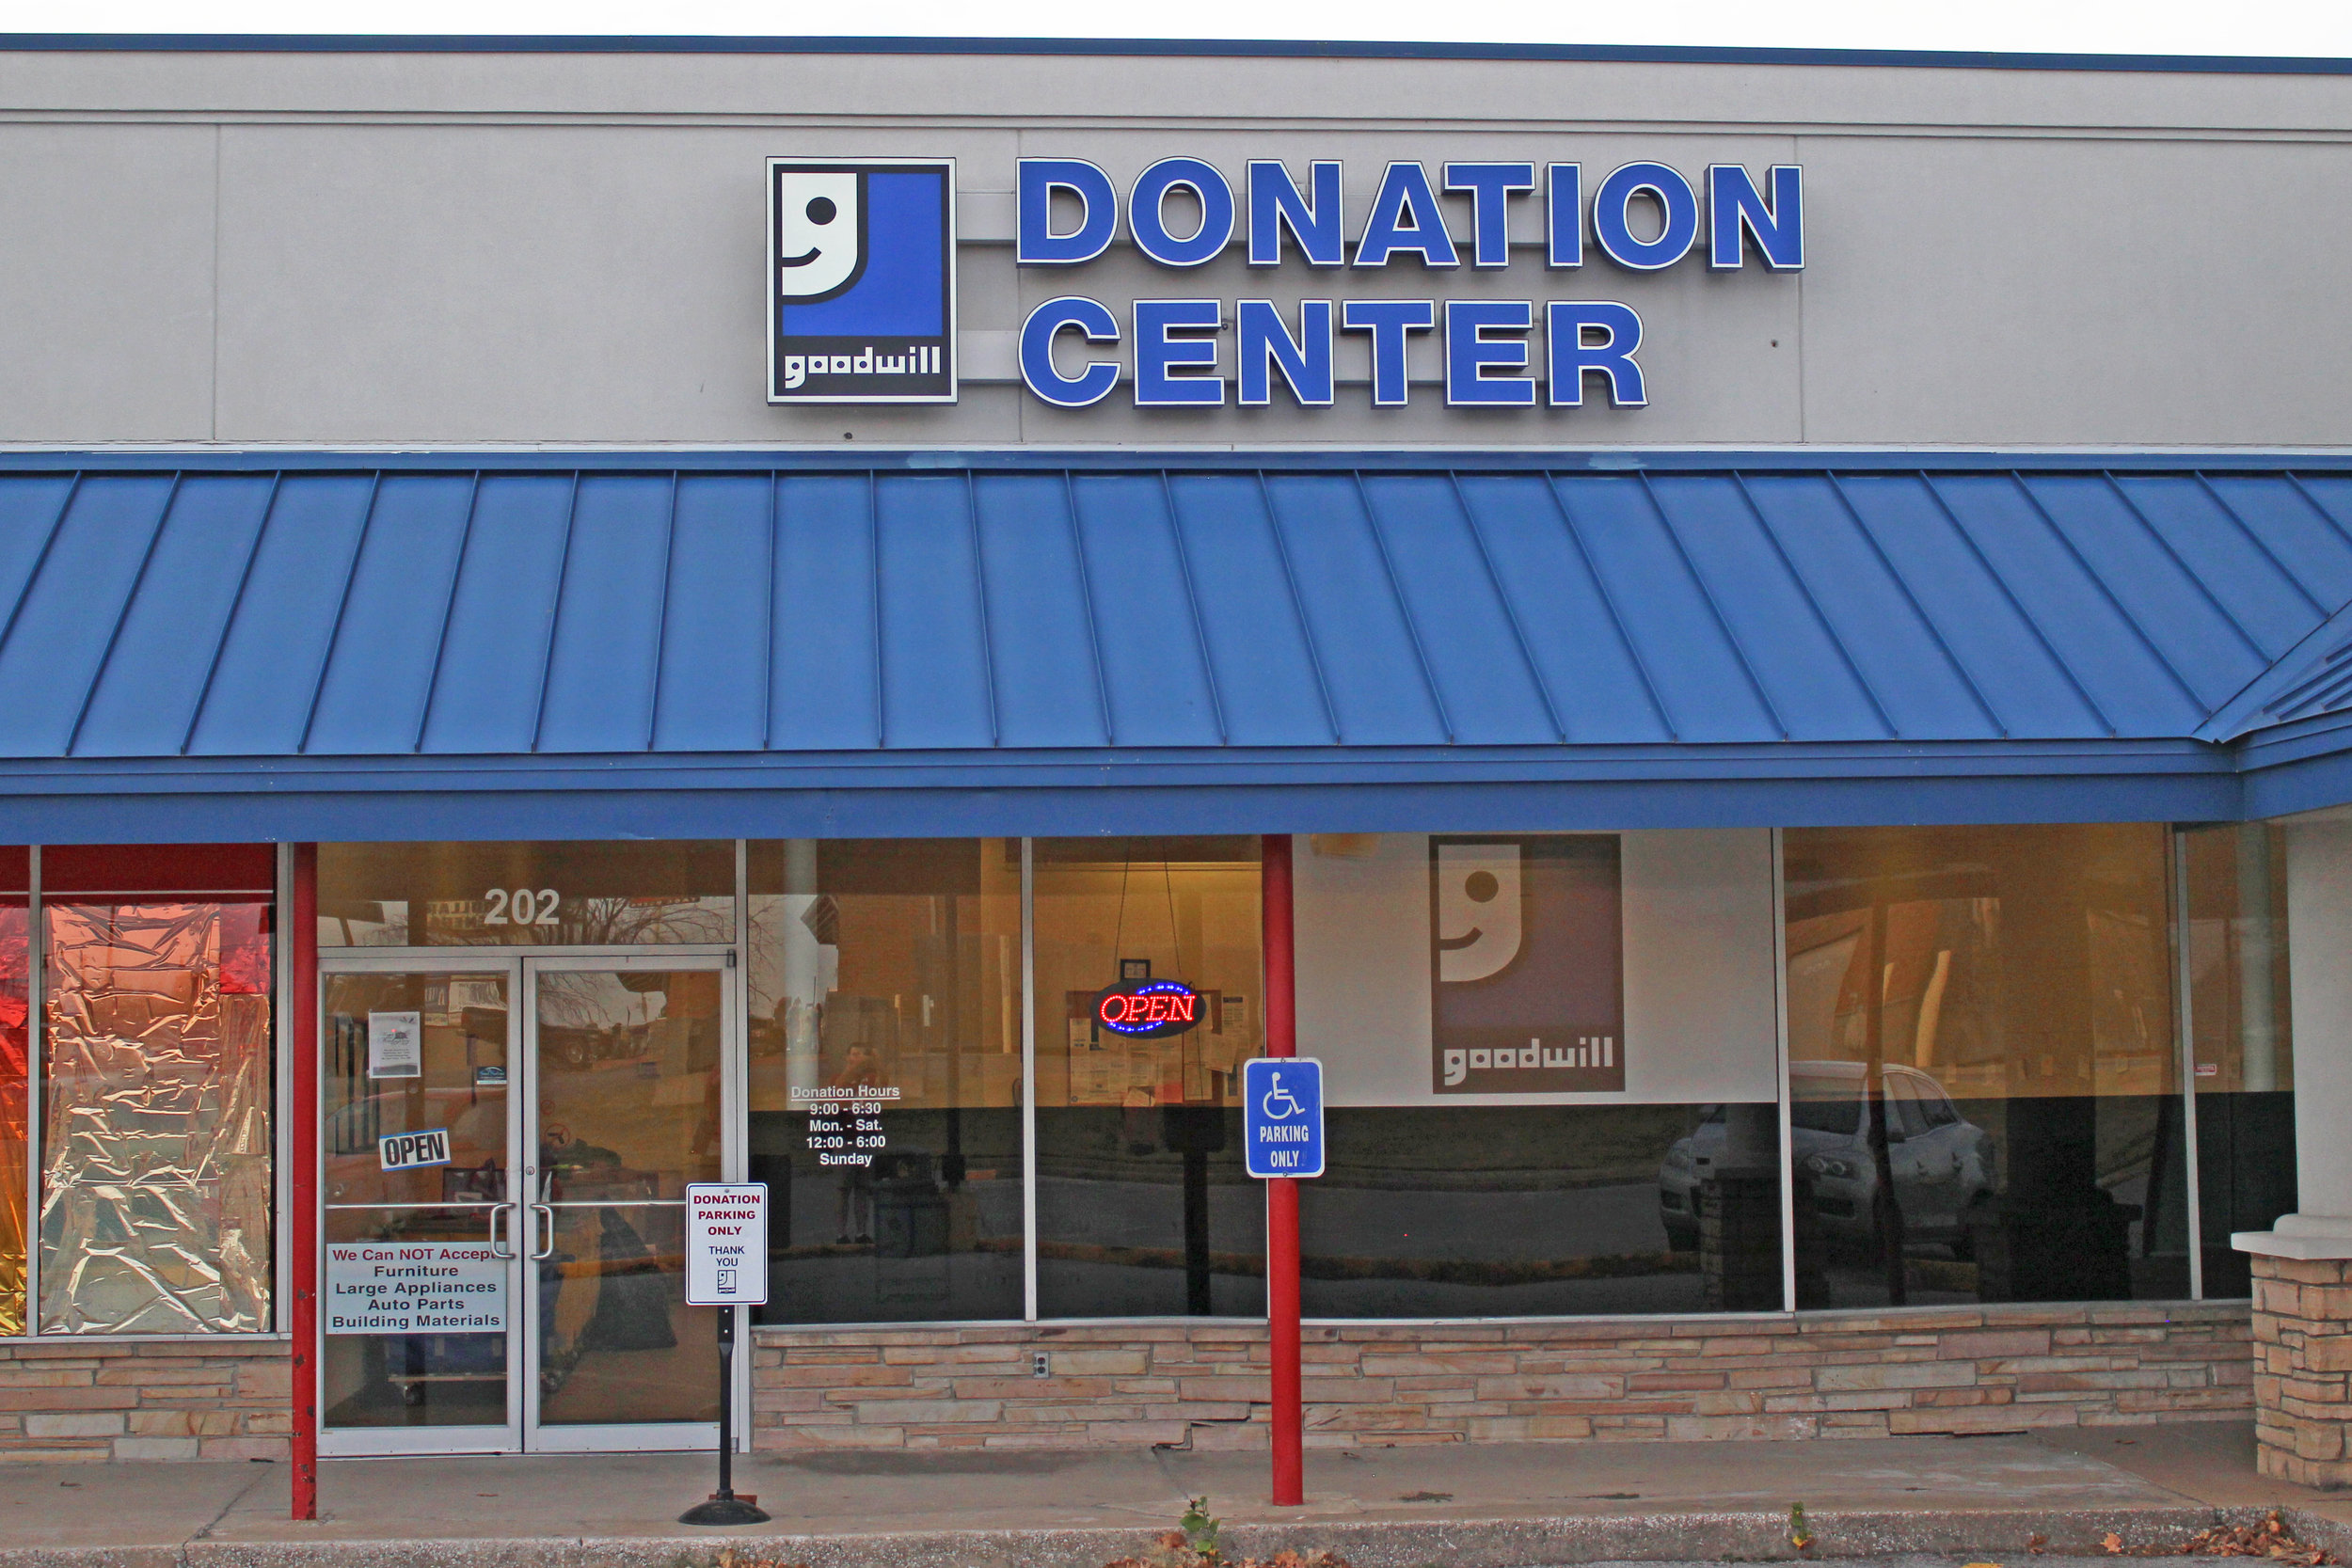 goodwill industries donation center - downtown 202 north jefferson avenue